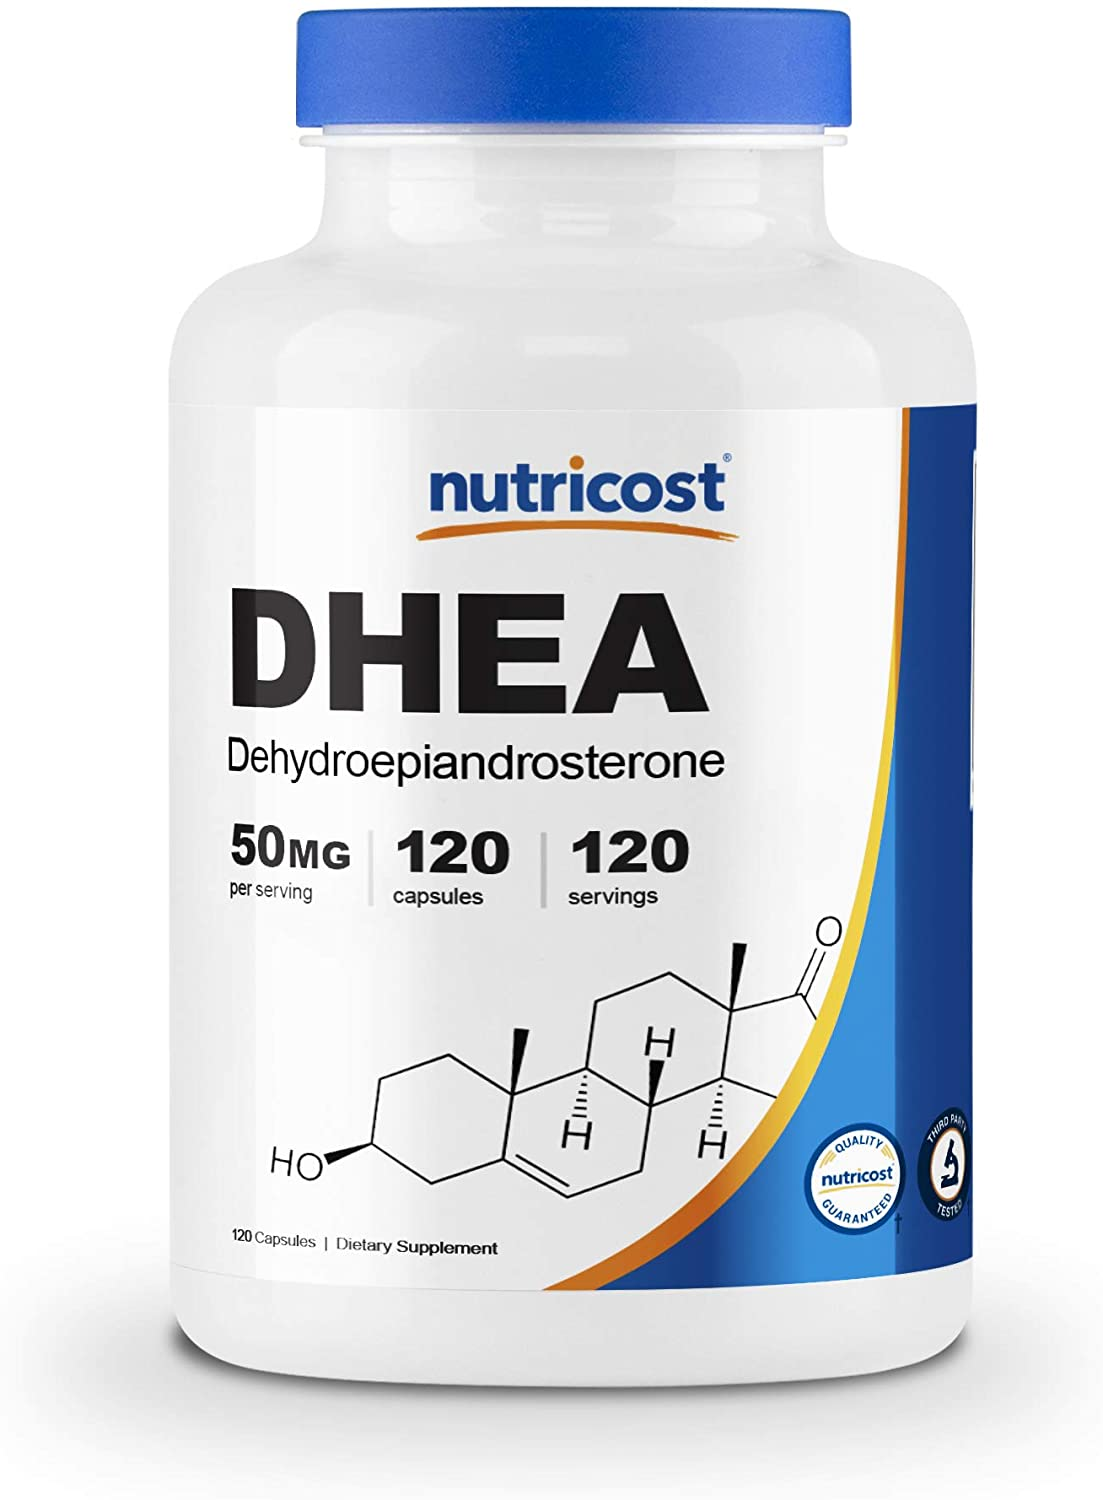 Nutricost DHEA 50mg, 120 Capsules - Gluten Free, Soy Free, Non-GMO, Supplement